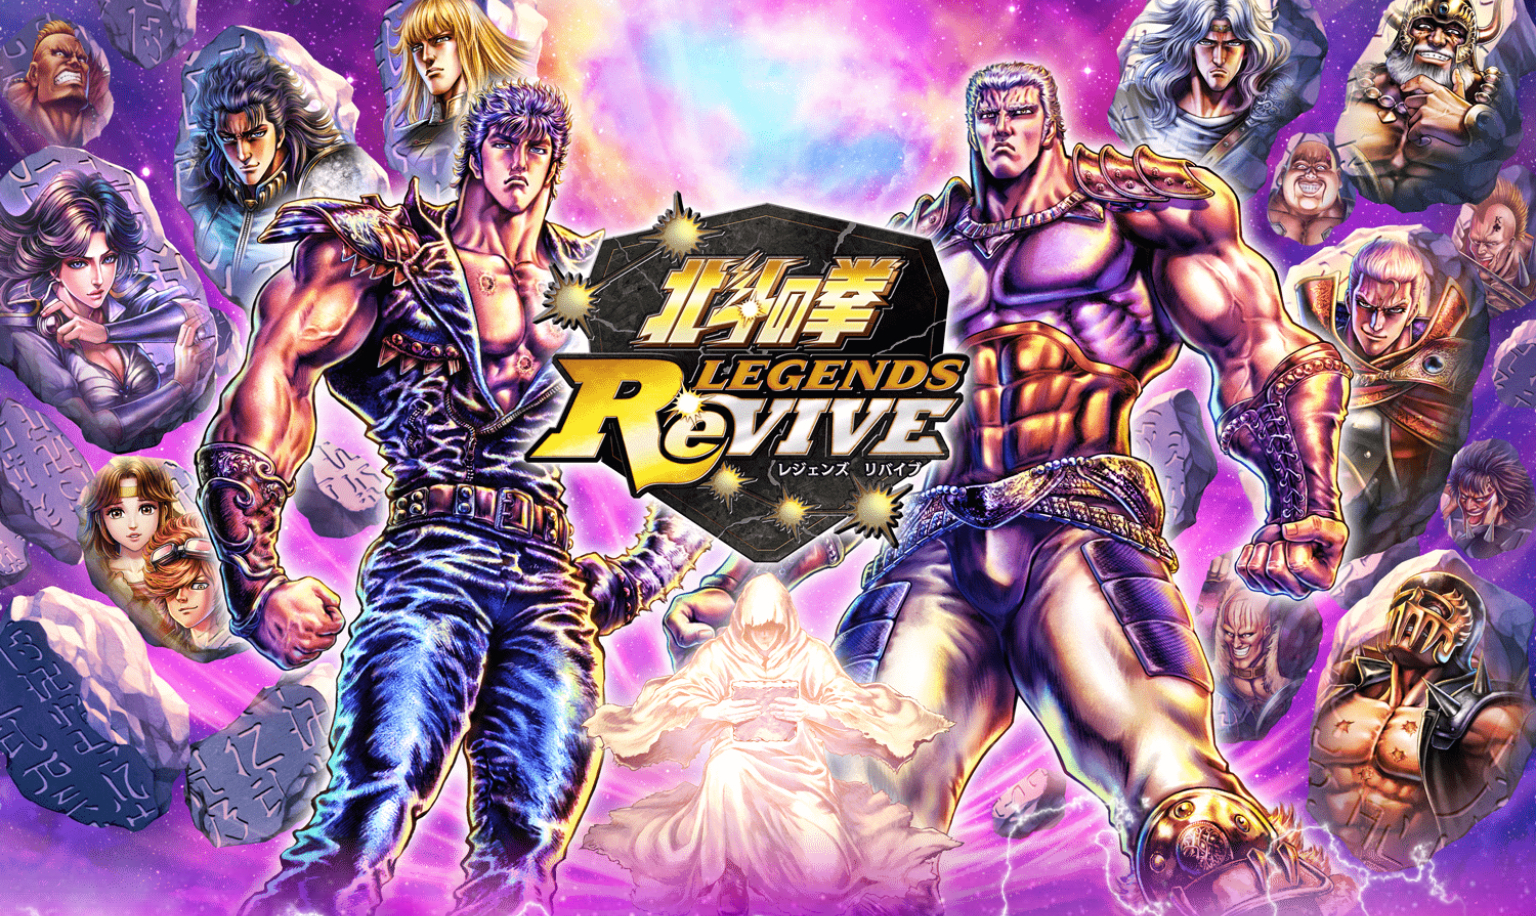 Fist of the North Star: Legends ReVIVE' Is a New RPG from SEGA Based